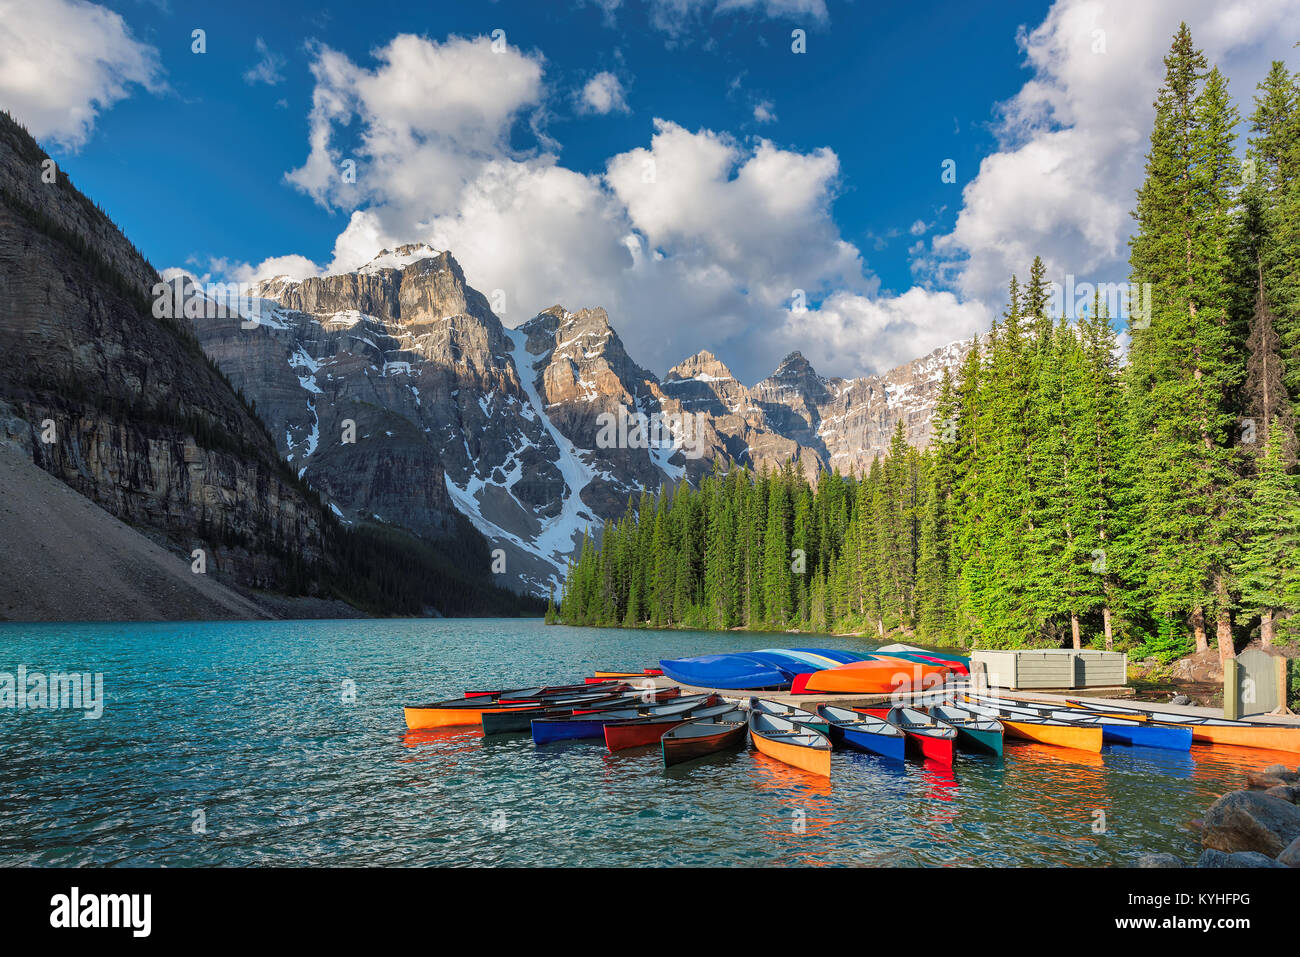 Moraine lake in Rocky Mountains, Banff National Park, Canada. - Stock Image